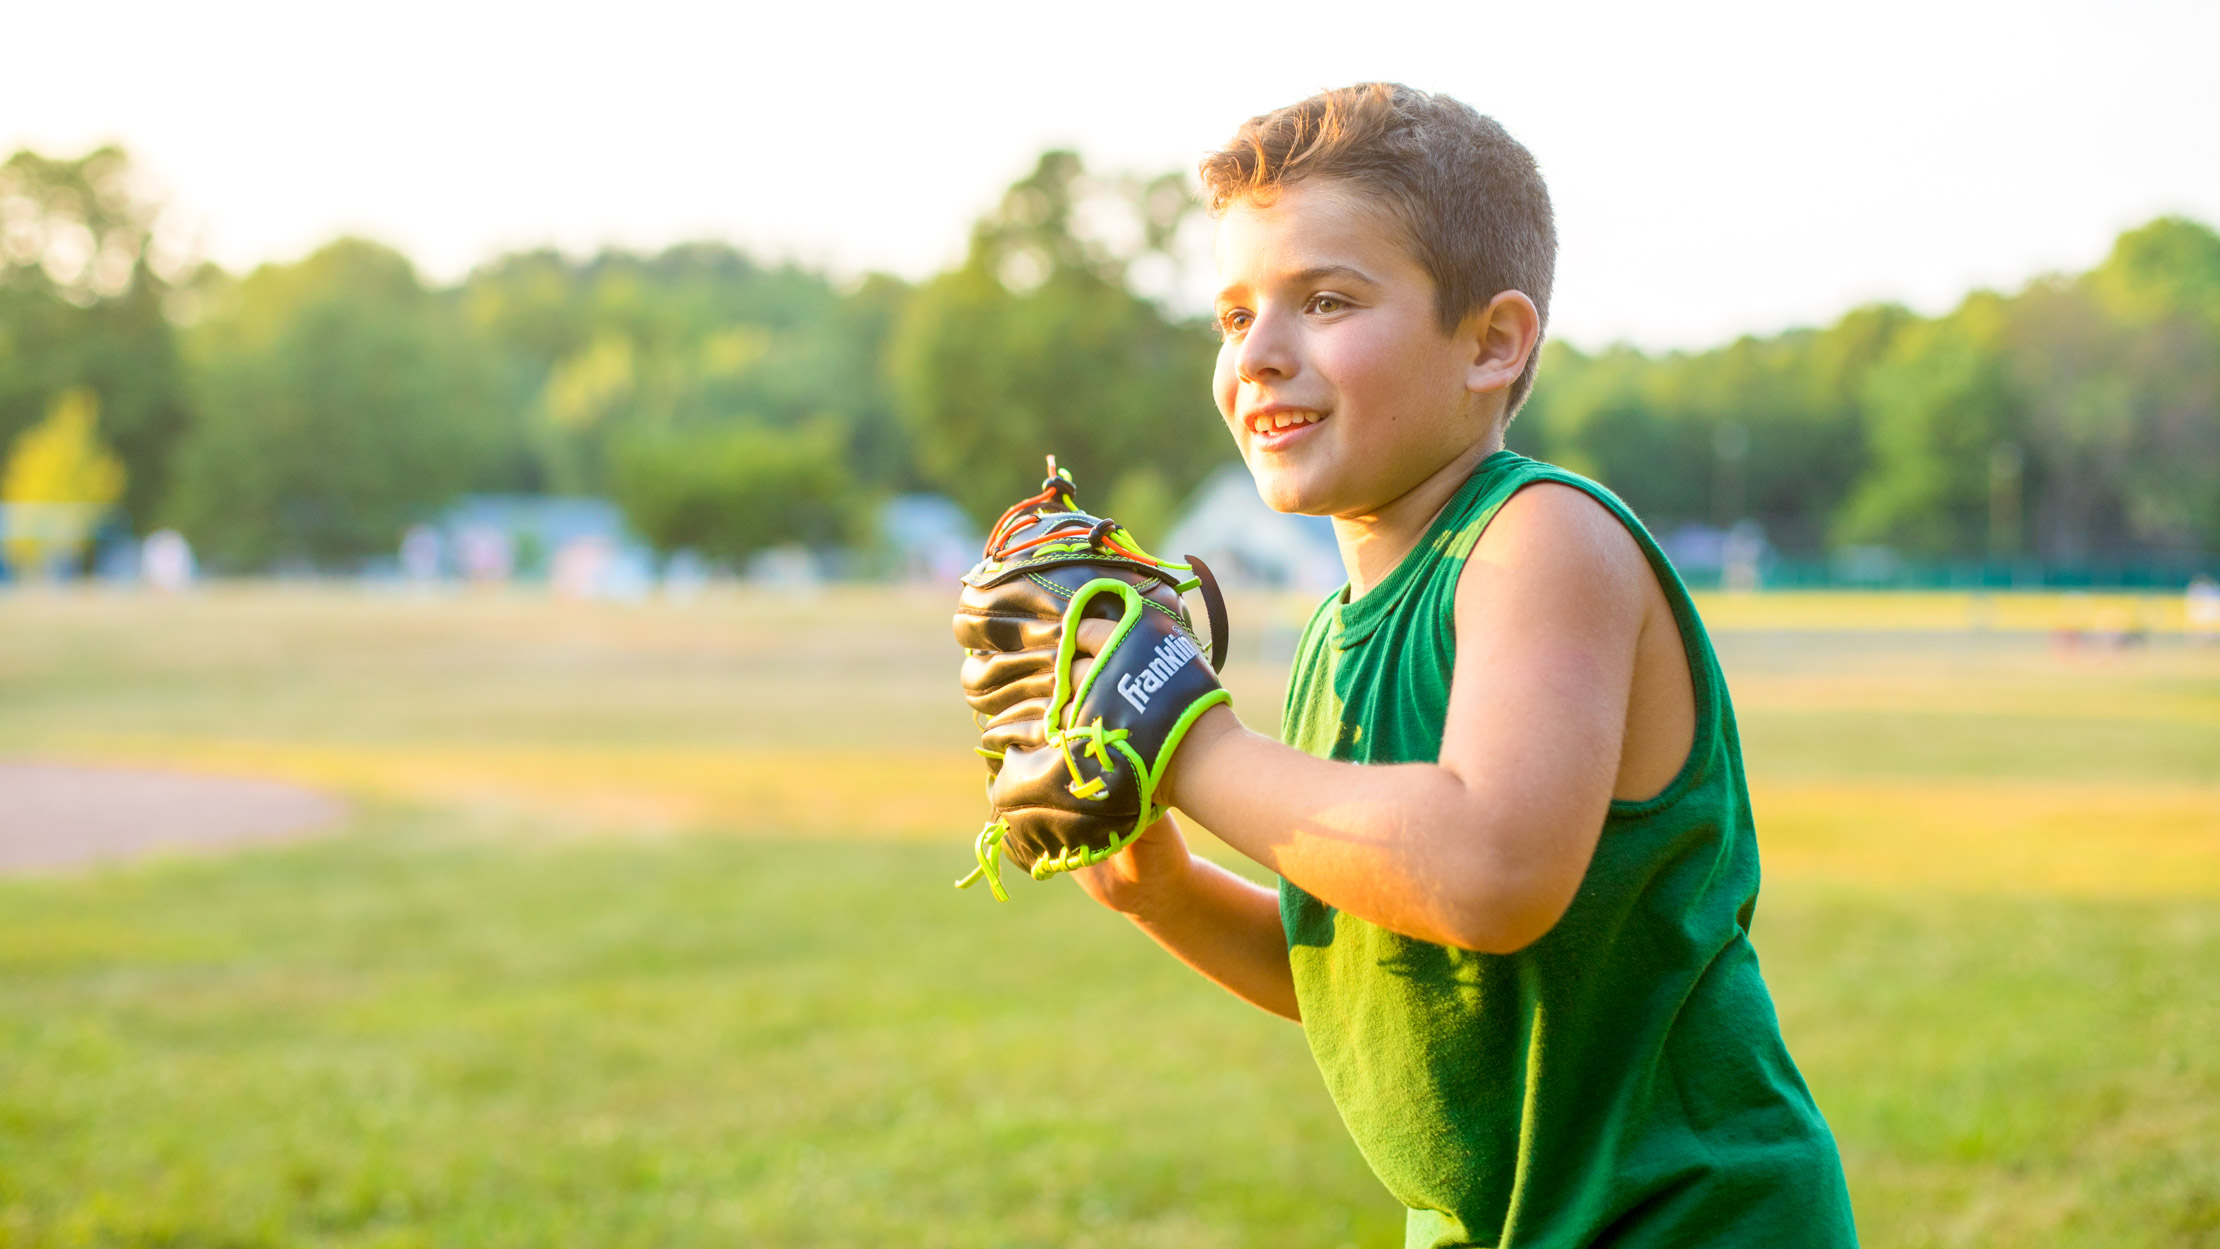 Boy pitches baseball during summer camp game